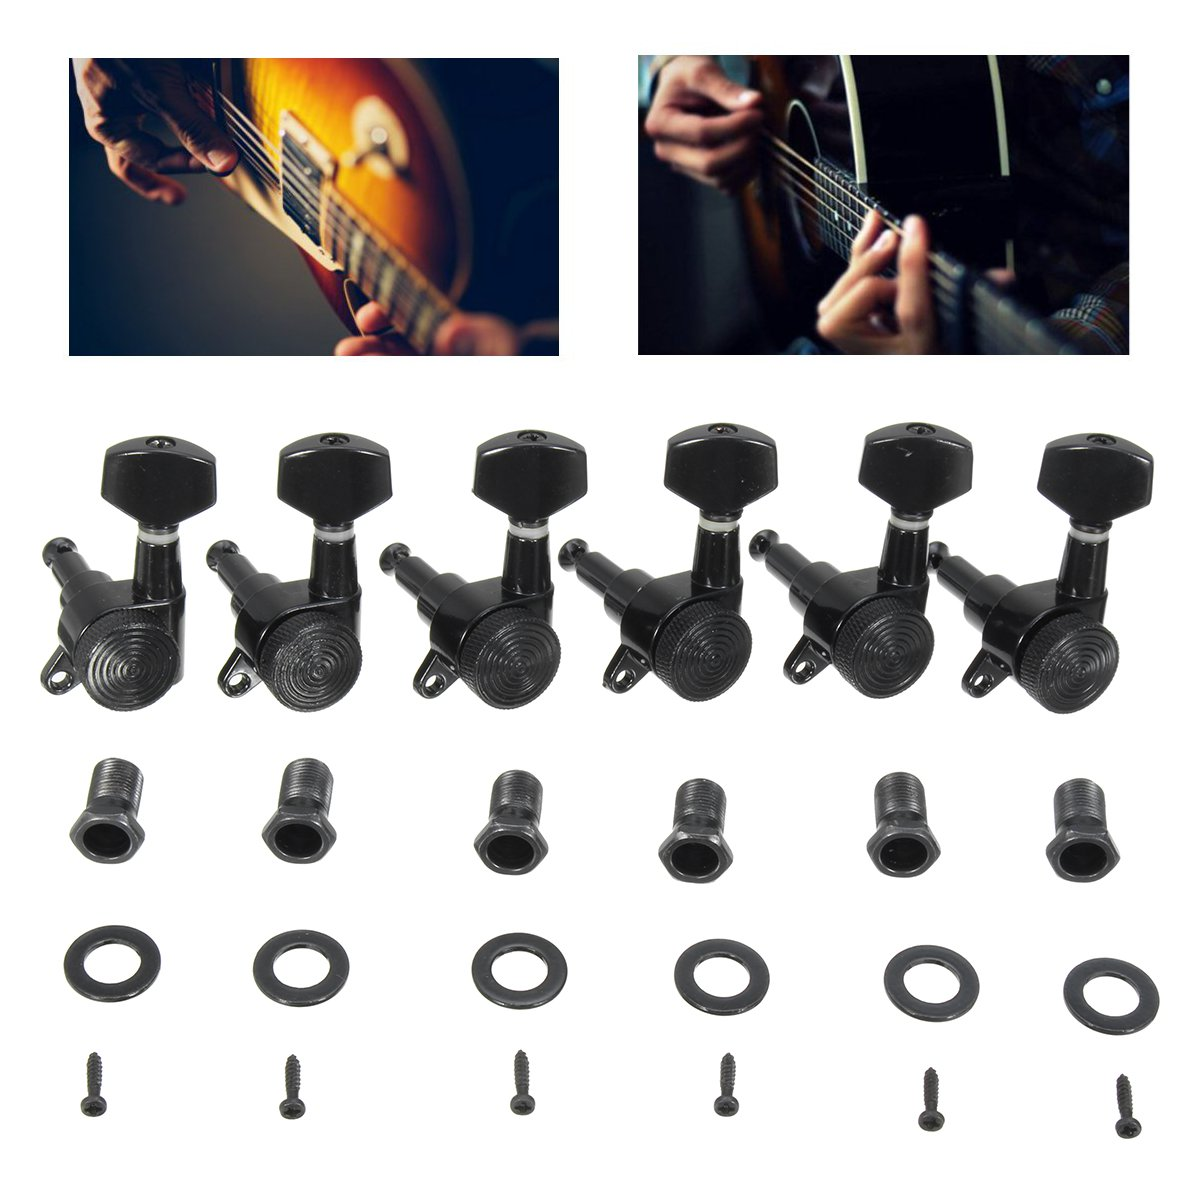 Moaere Sealed Electric Guitar String Tuning Pegs Keys Machine Head Tuners Set Right Hand for Fender Strat Tele Telecaster Guitar